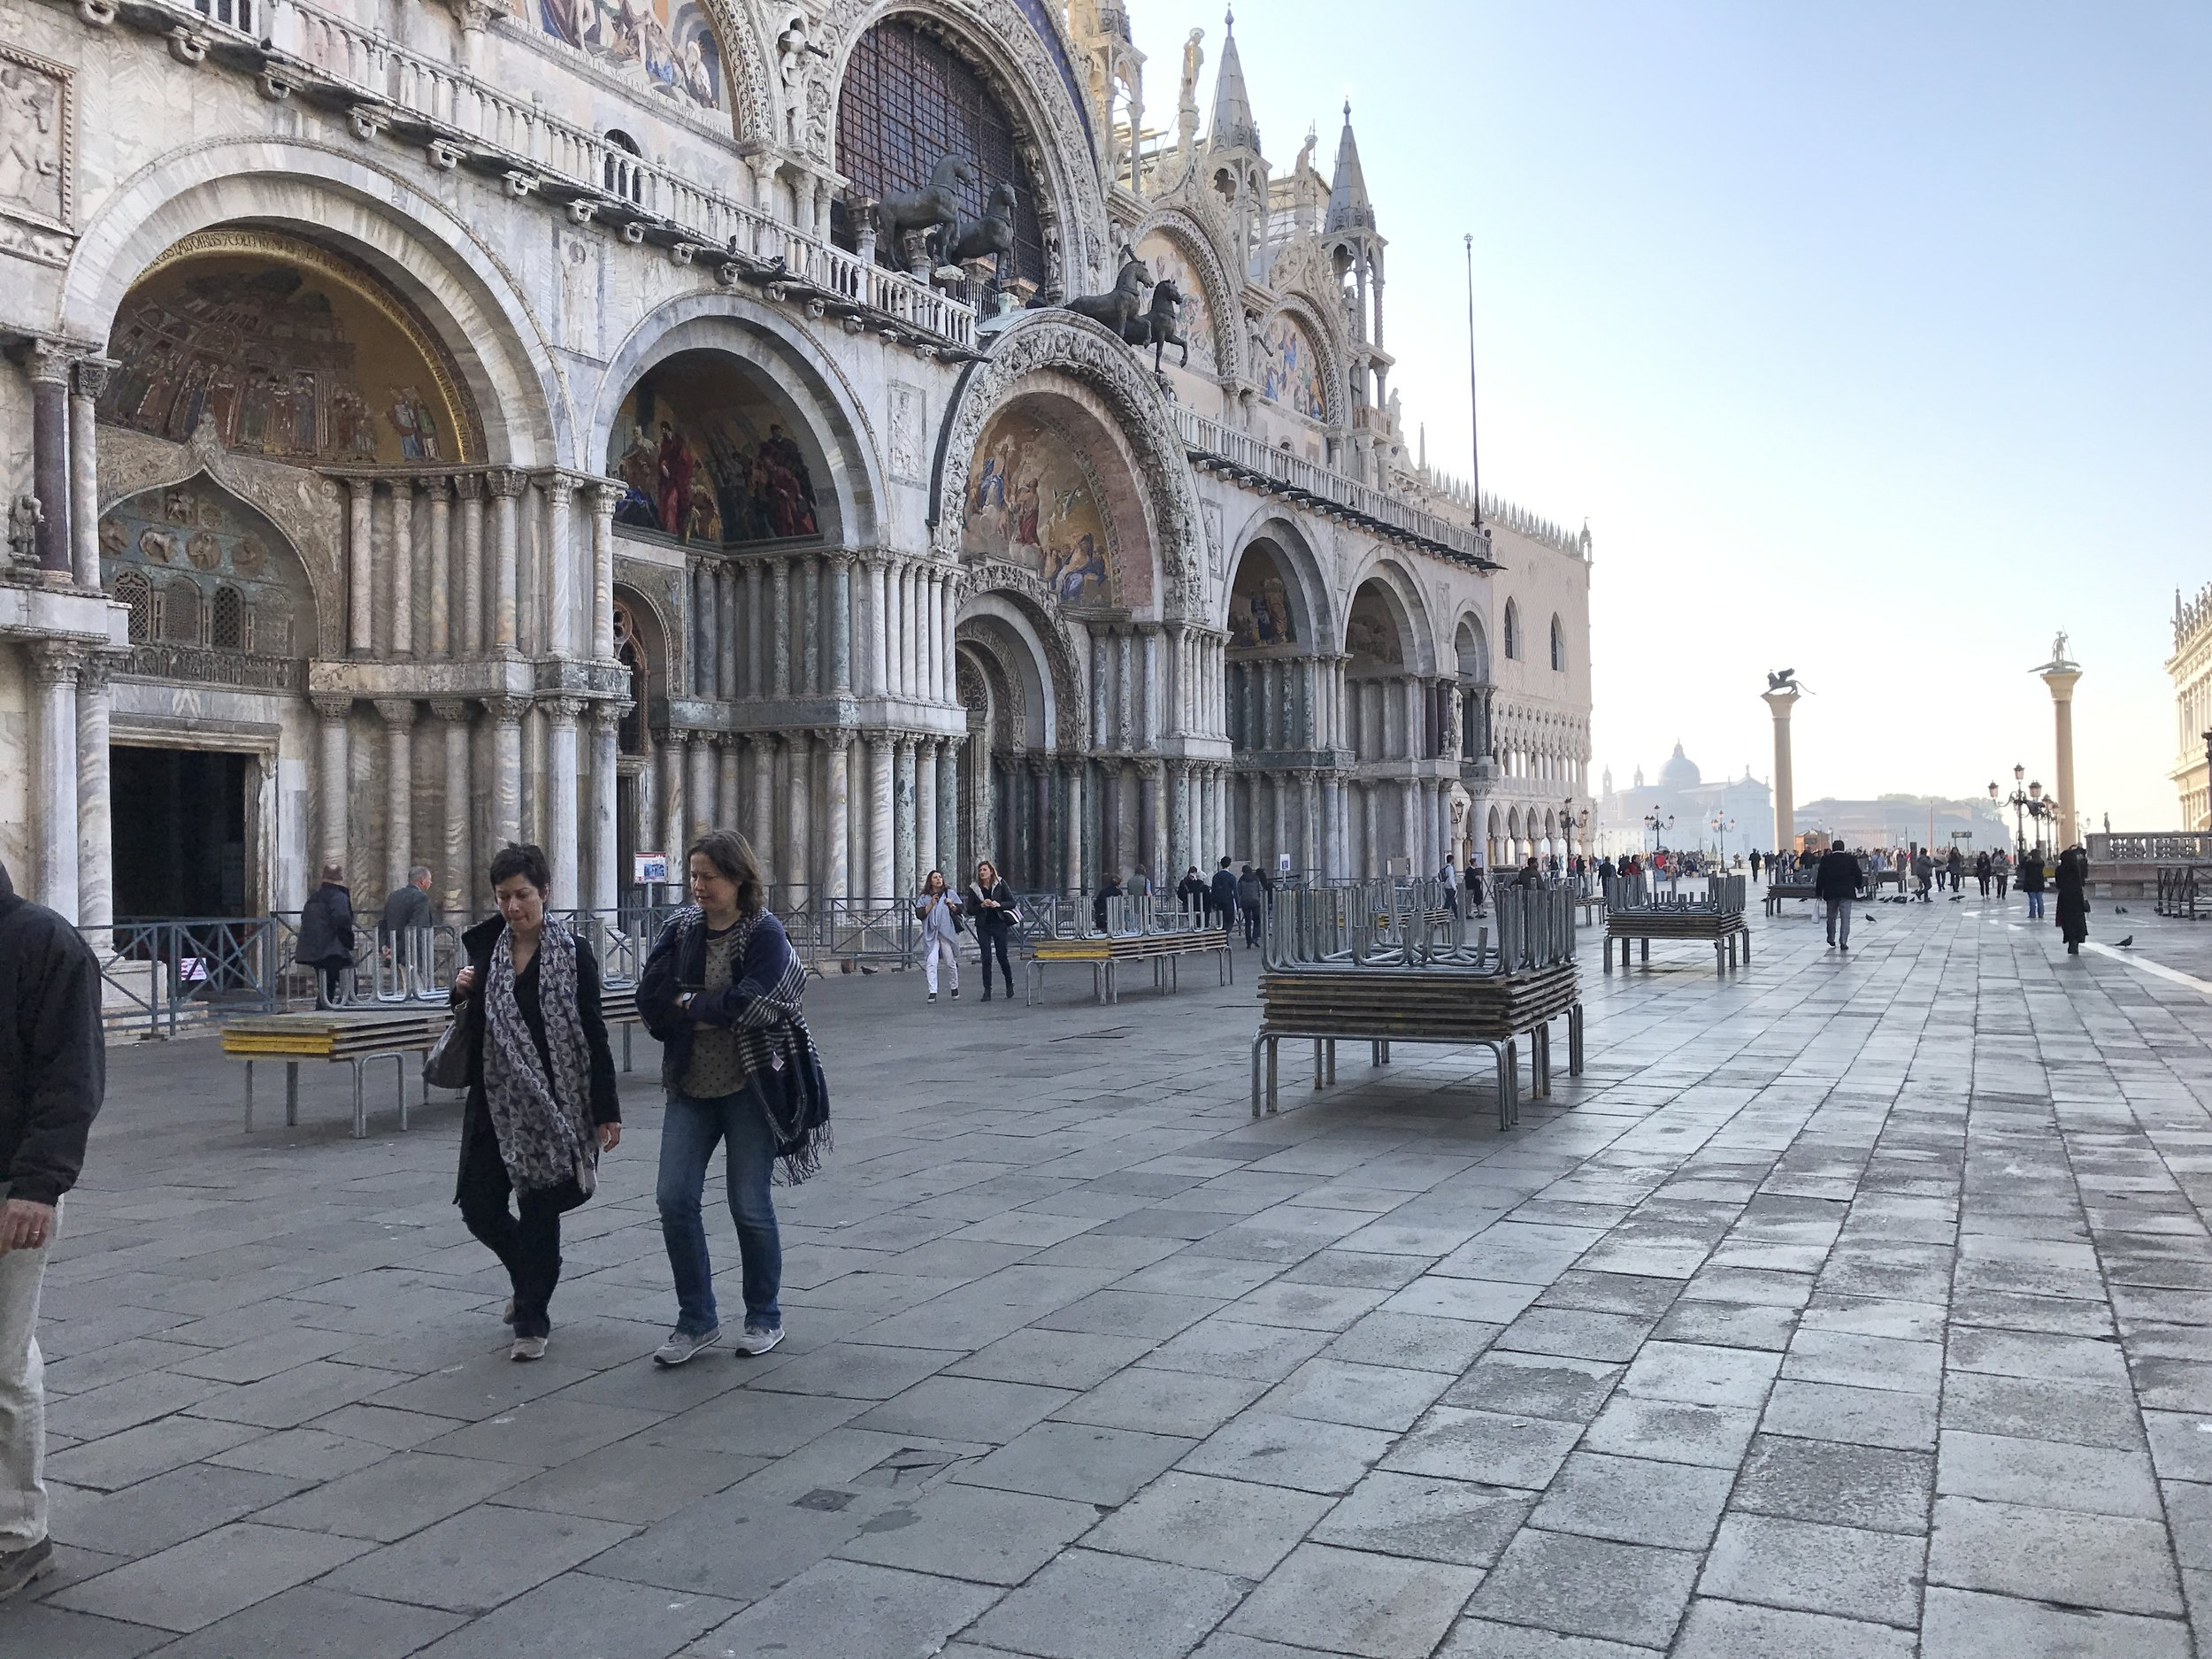 Piazza San Marco early morning. This place is packed elbow to elbow within a couple of hours.